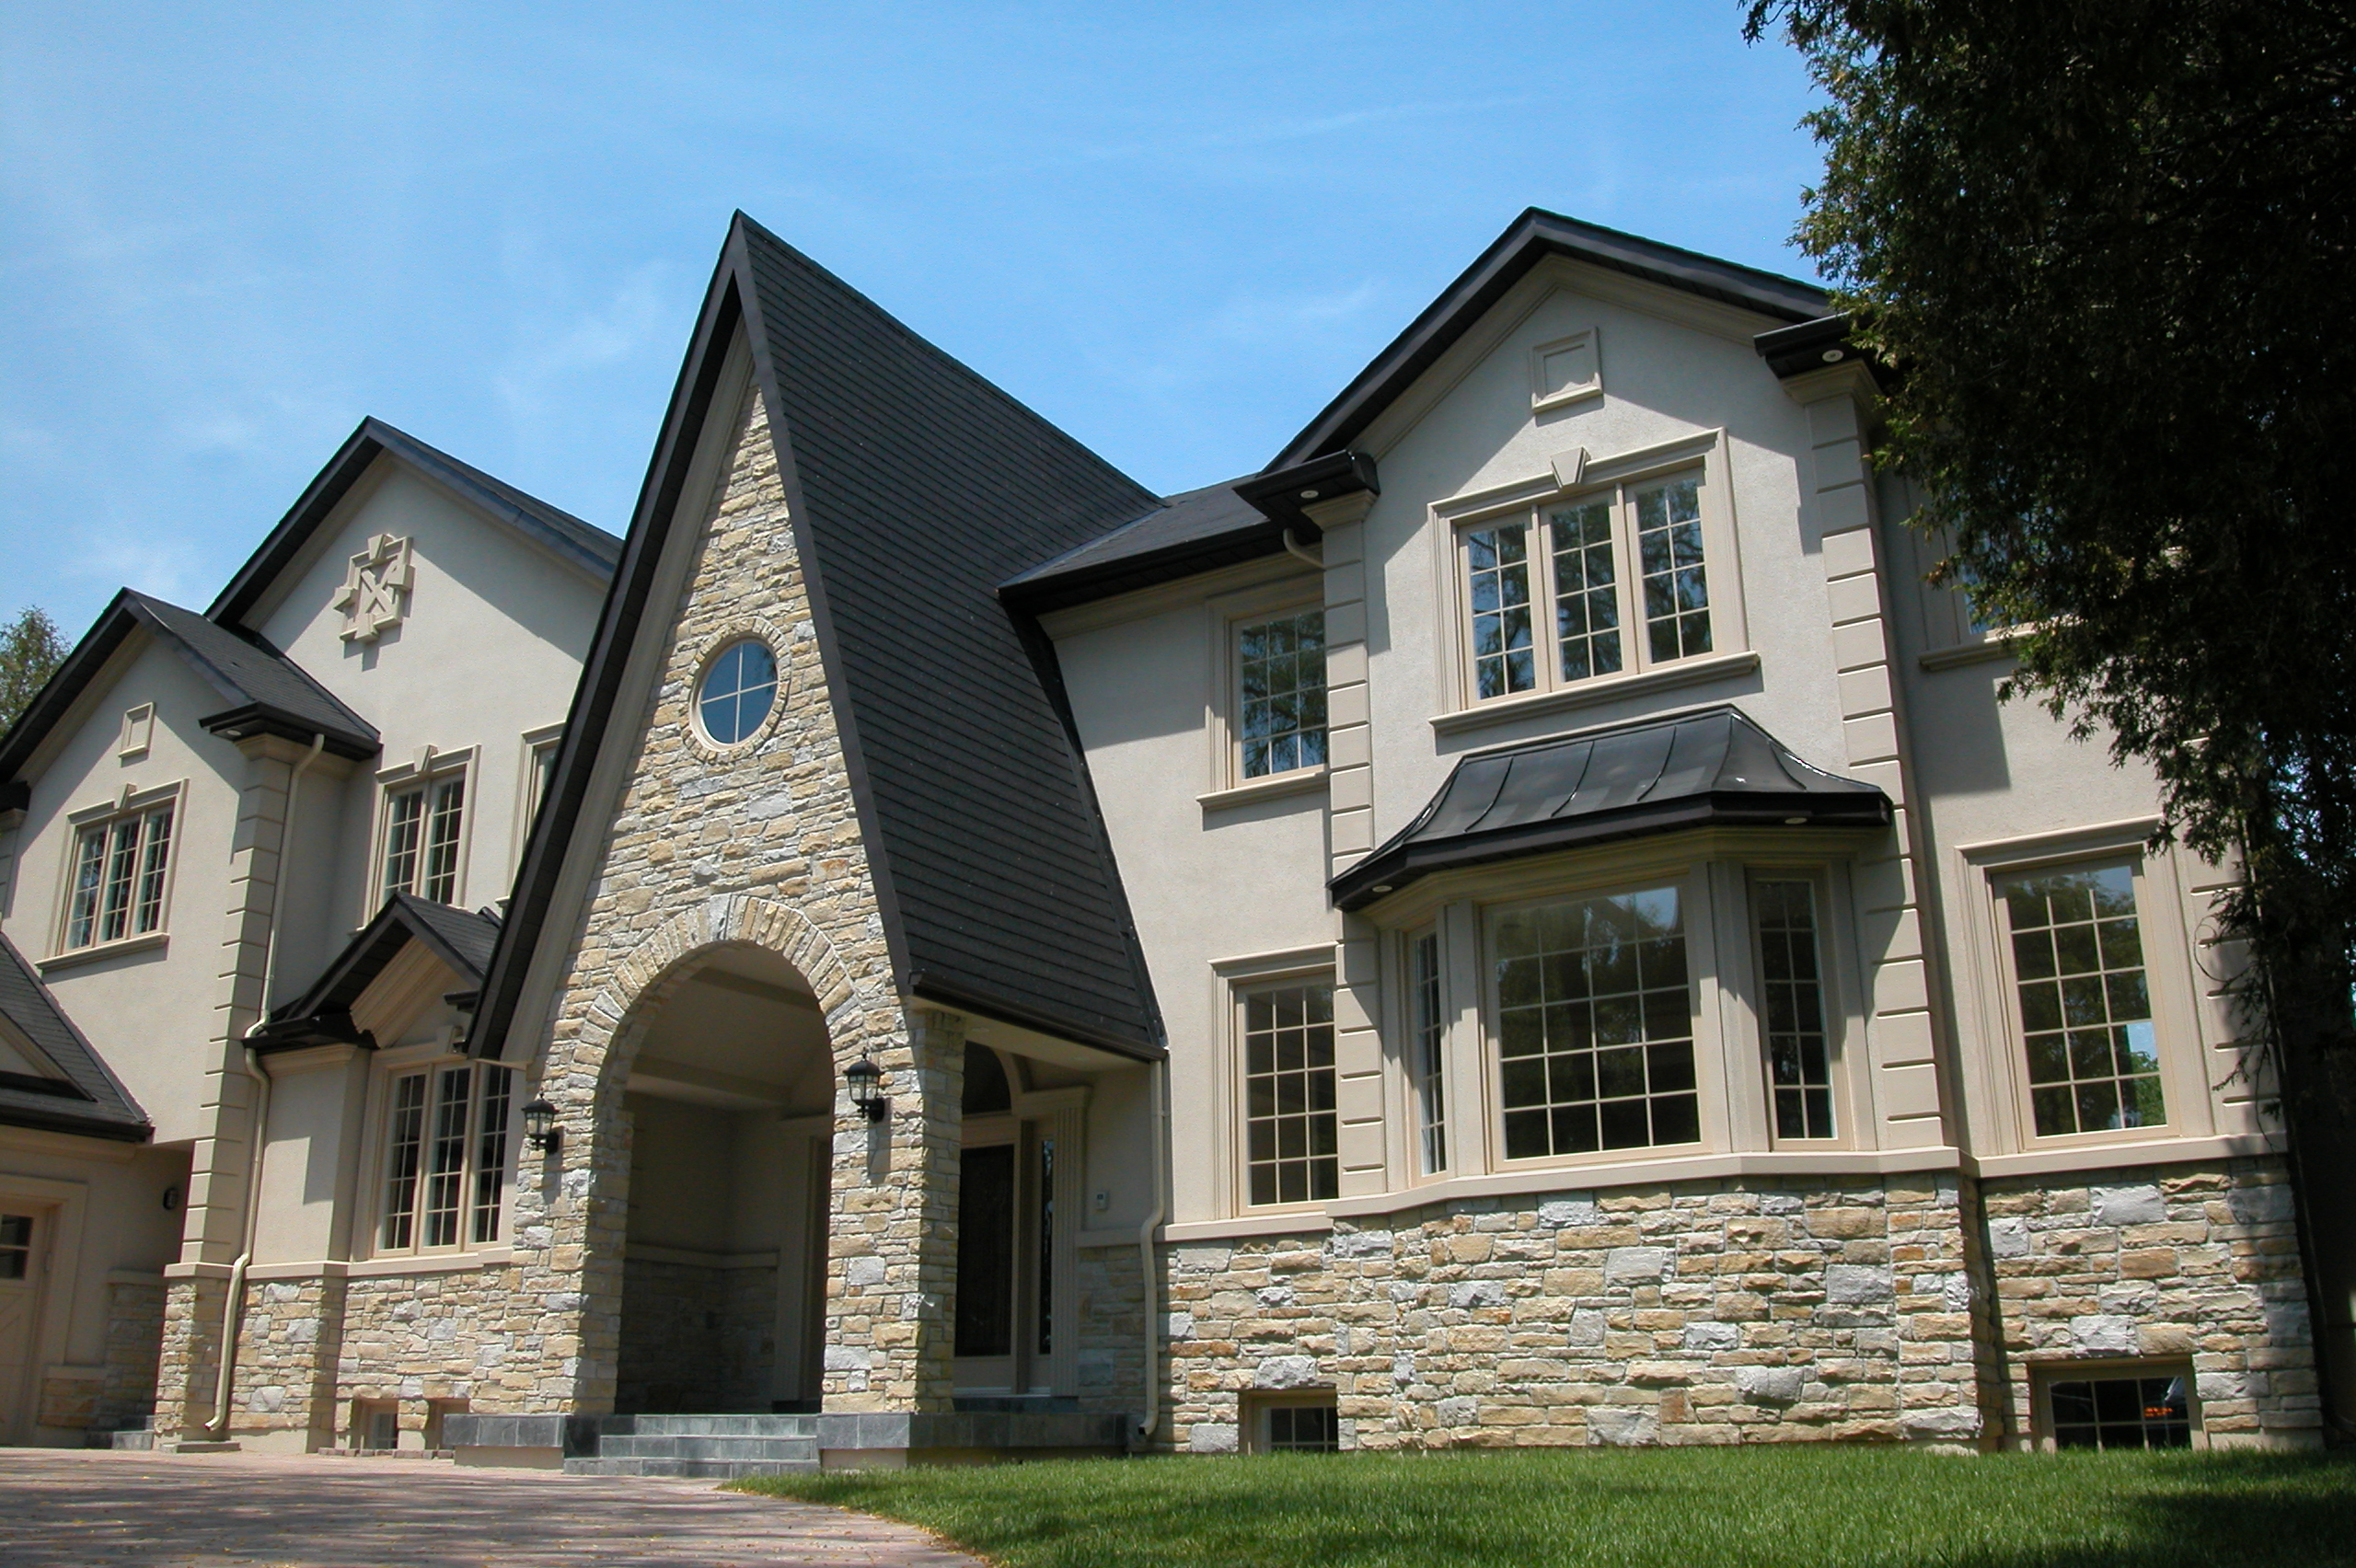 6 Atlantis Exterior On Pinterest James Hardie Stone